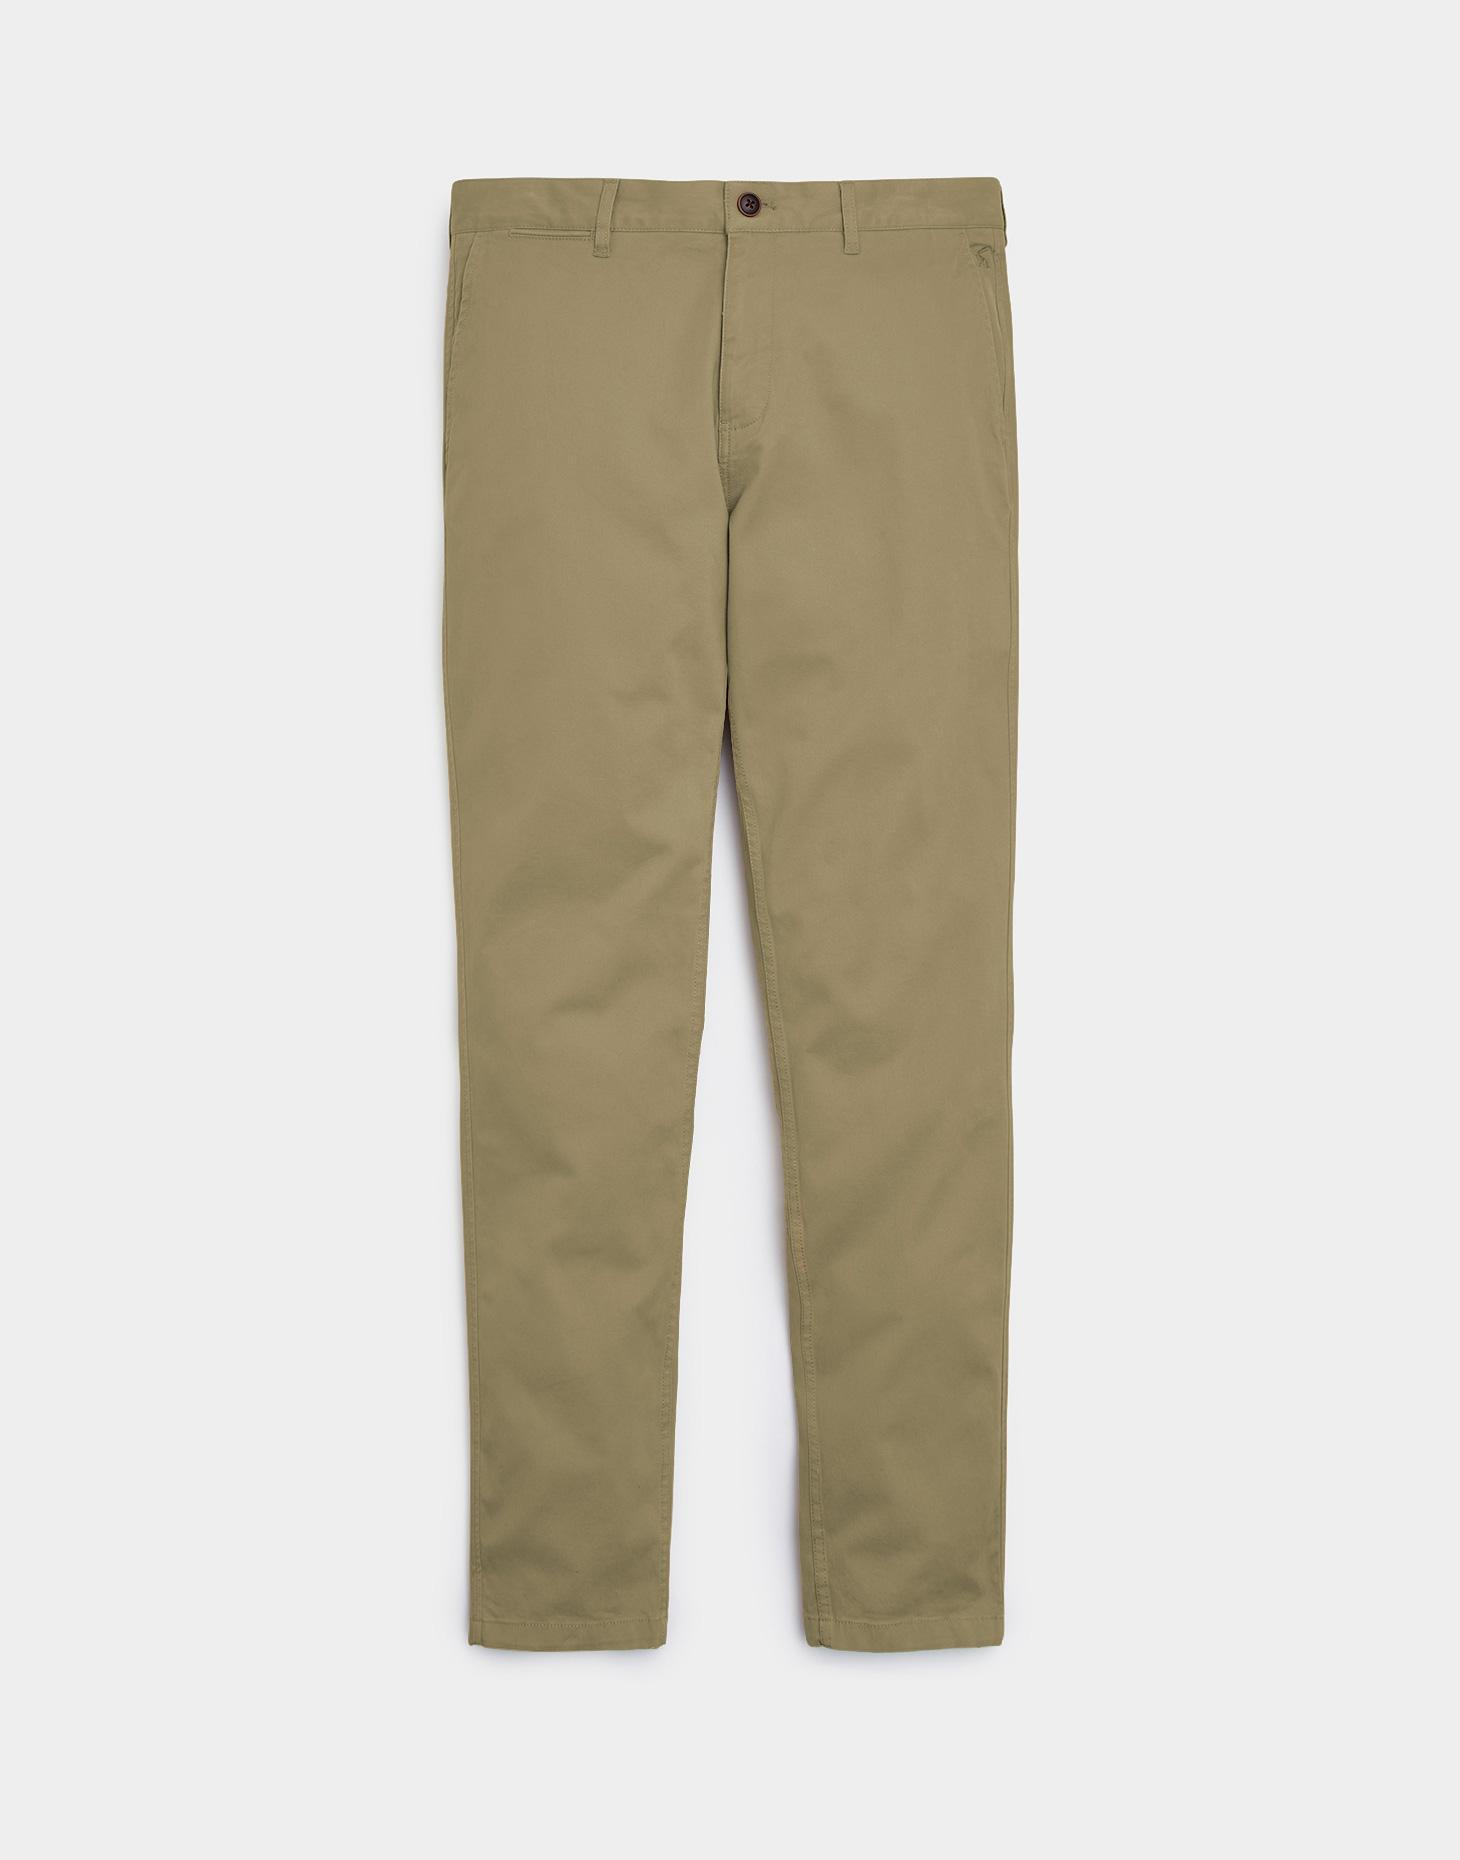 Joules Driftwood CHINO Trousers